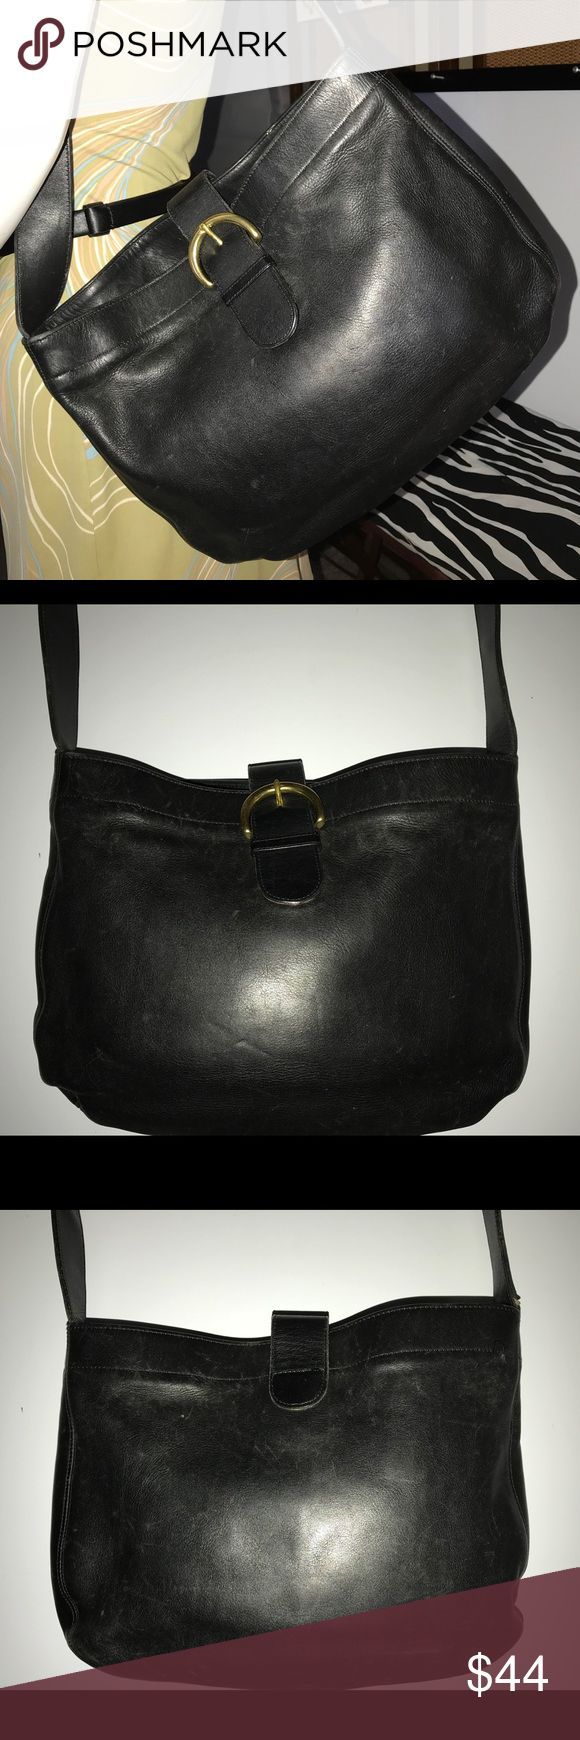 🐎 VTG COACH SOHO HOBO Buckle Flap Shoulder Bag Vintage Legacy Coach Bag In Very Good Condition   • F7C - 4166 • Made In USA • Buckle Flap Closure  • Bronze Hardware  • Normal Signs Of Wear  • Reasonable Offers Welcome  • Satisfaction Guaranteed Coach Bags Hobos